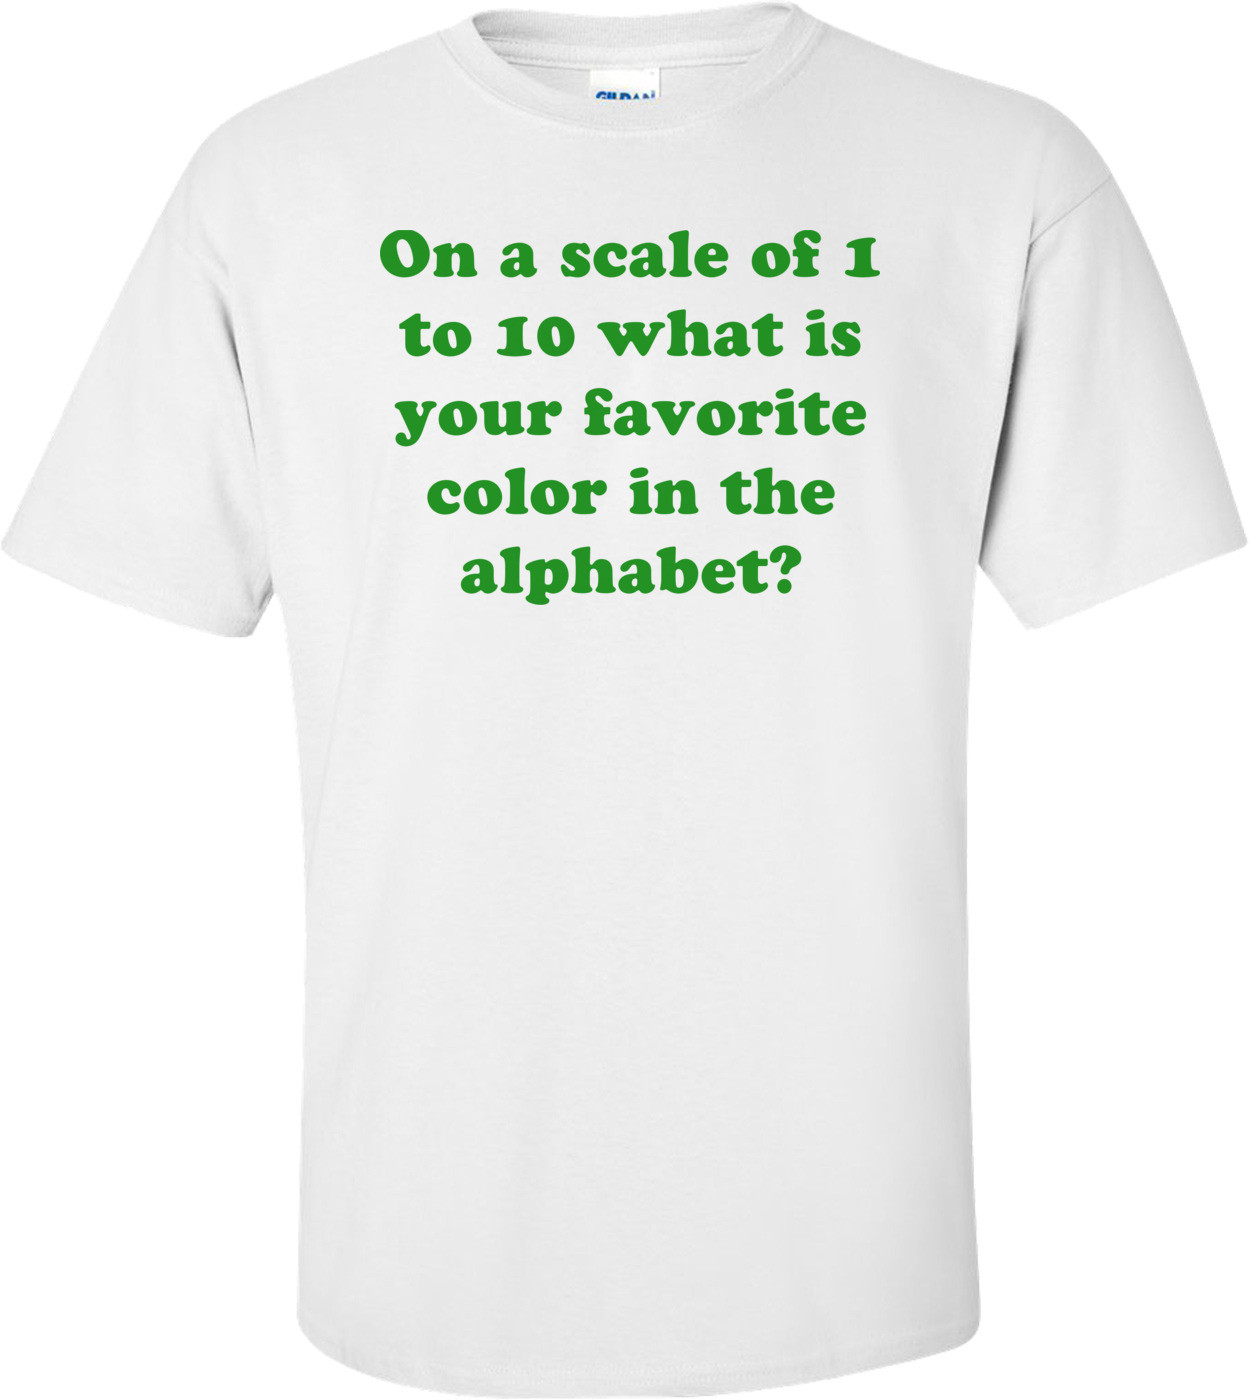 On a scale of 1 to 10 what is your favorite color in the alphabet? Shirt